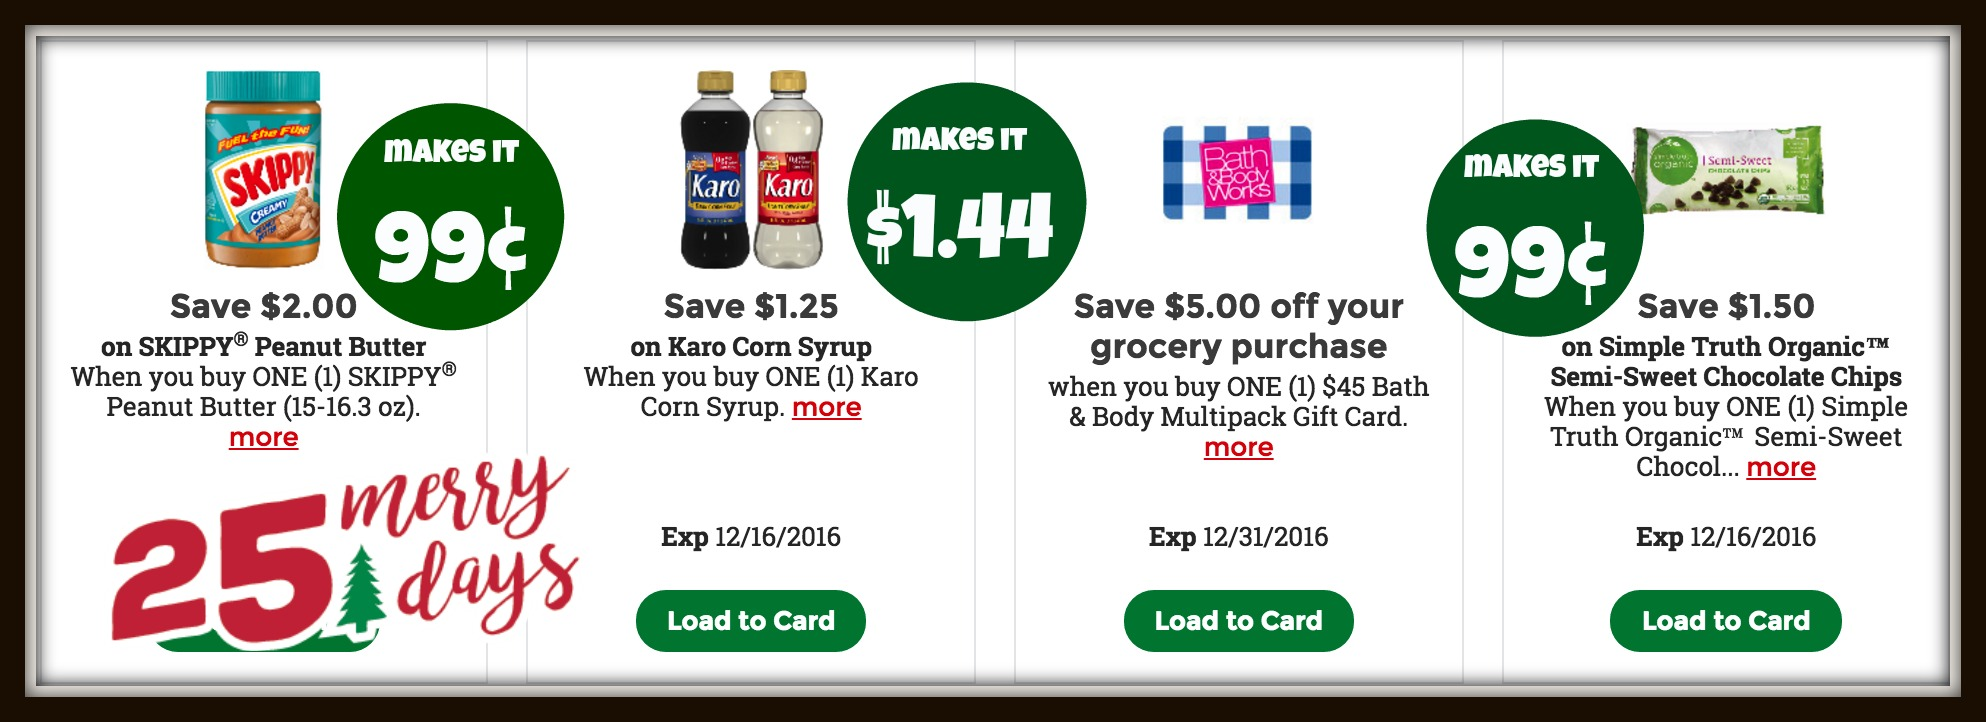 Kroger 25 Merry Days | High Value Coupons for Simple Truth ...